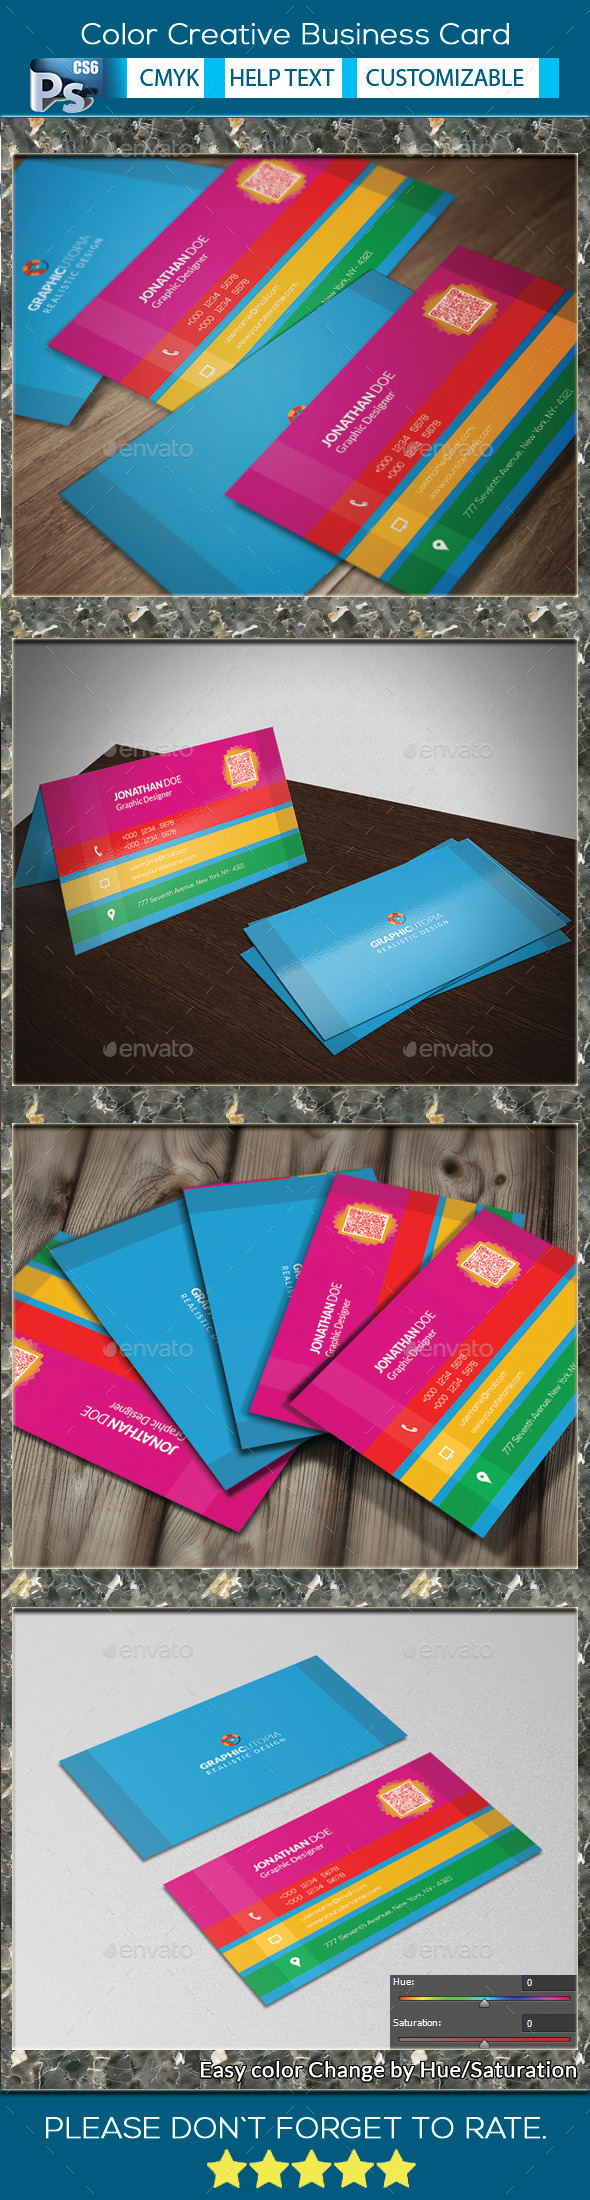 Color Creative Business Card